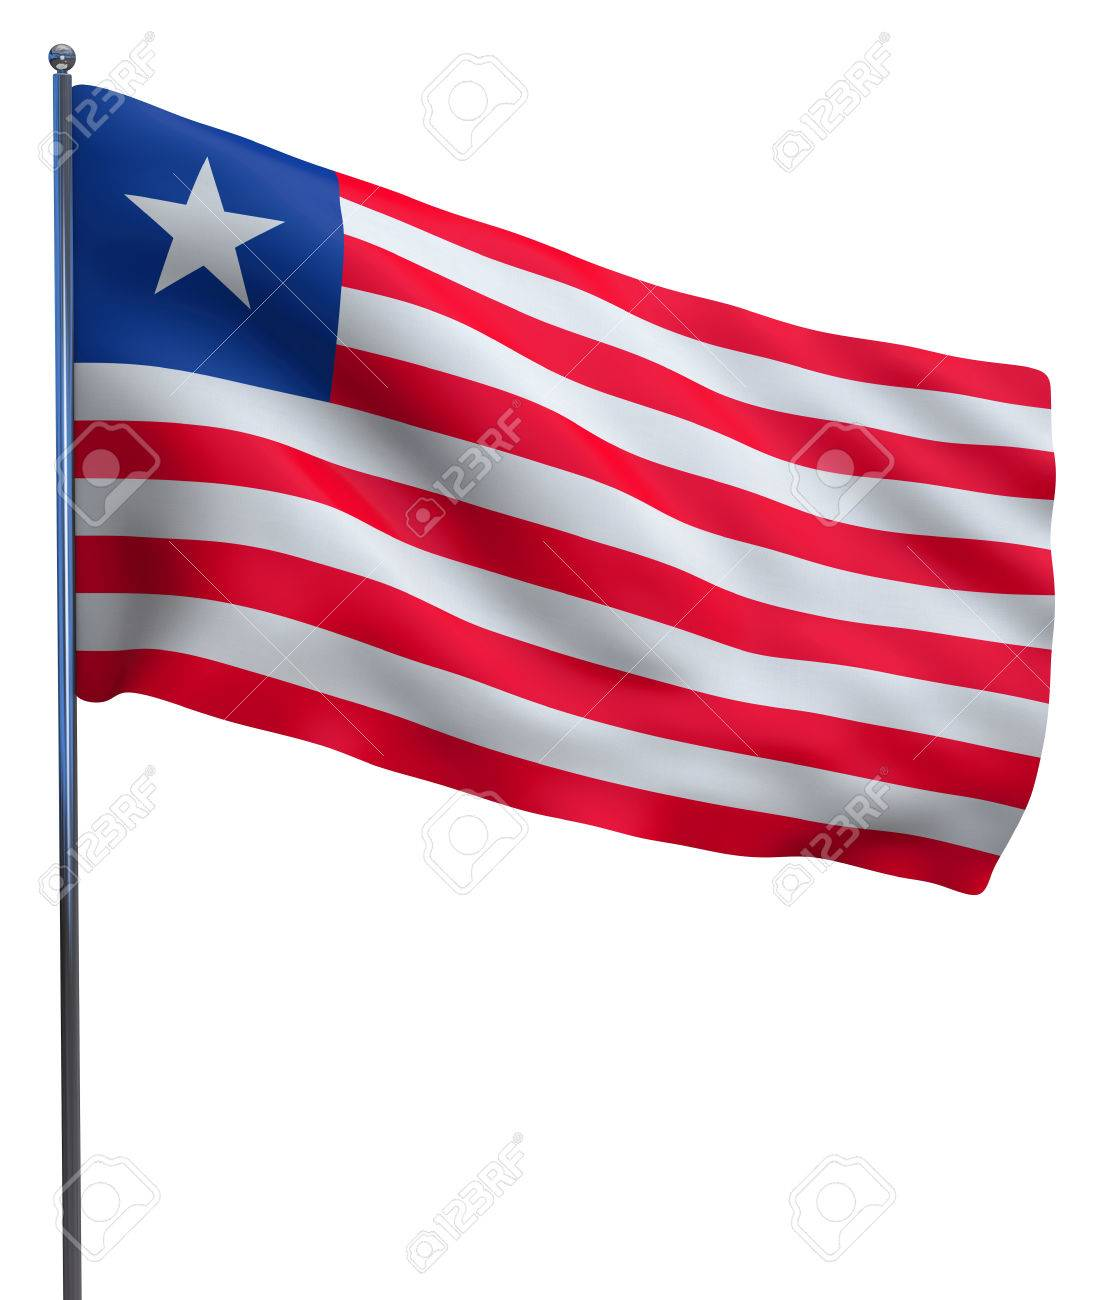 Liberia flag waving image isolated on white  Clipping path included